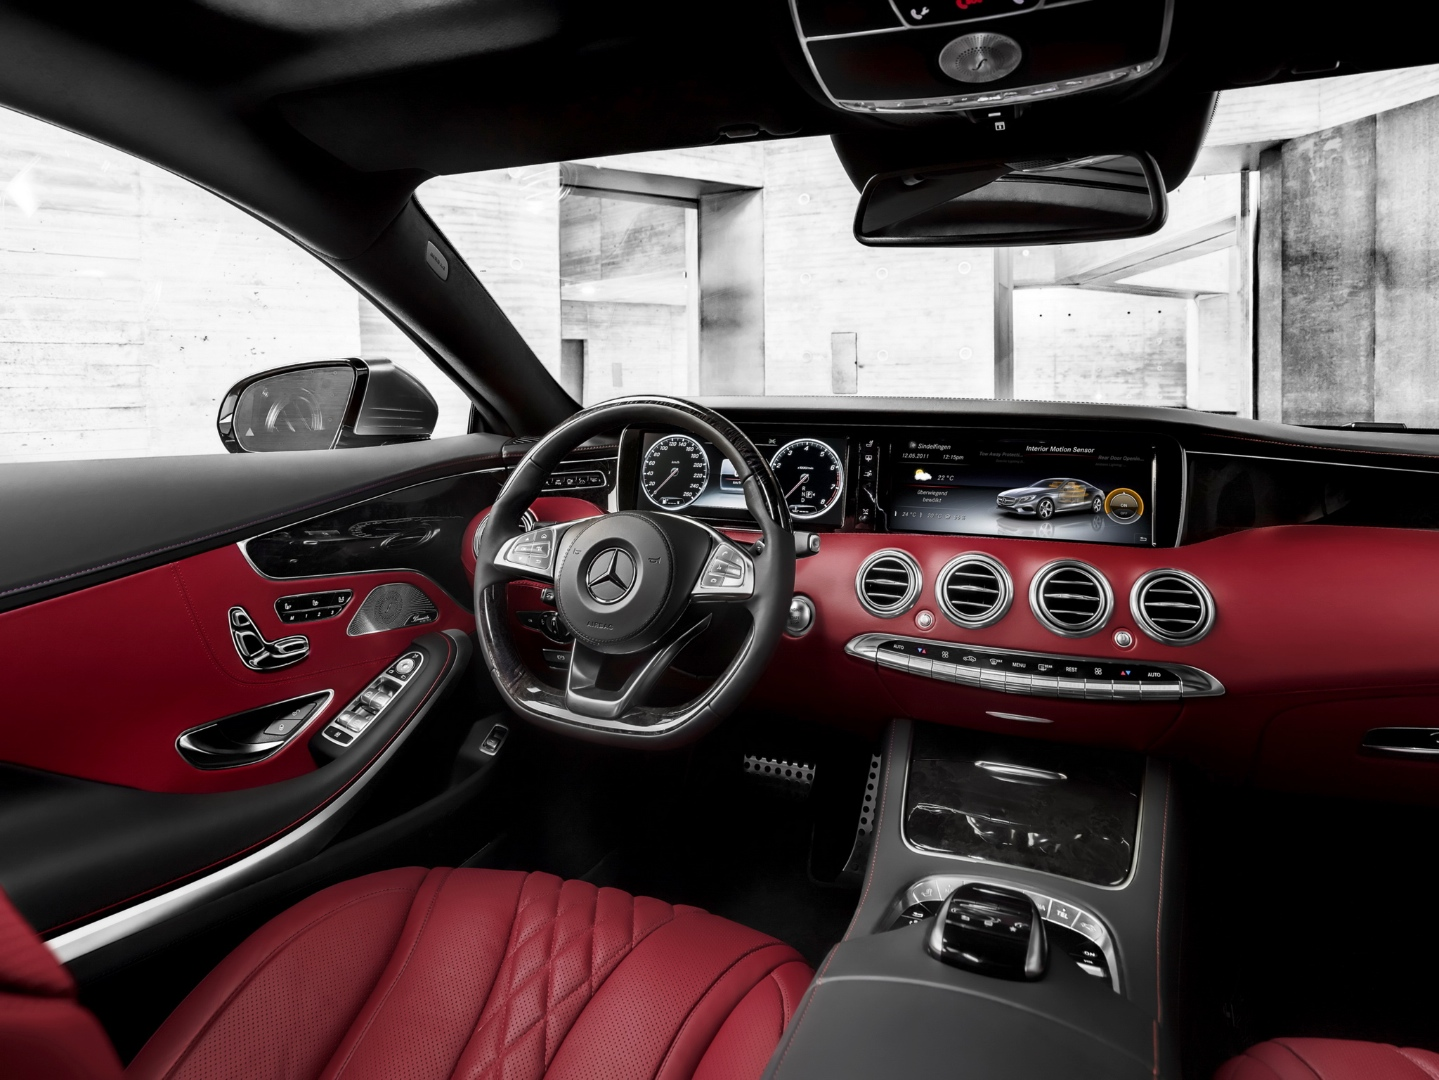 Mercedes Benz S Class Coupe C217 Interior